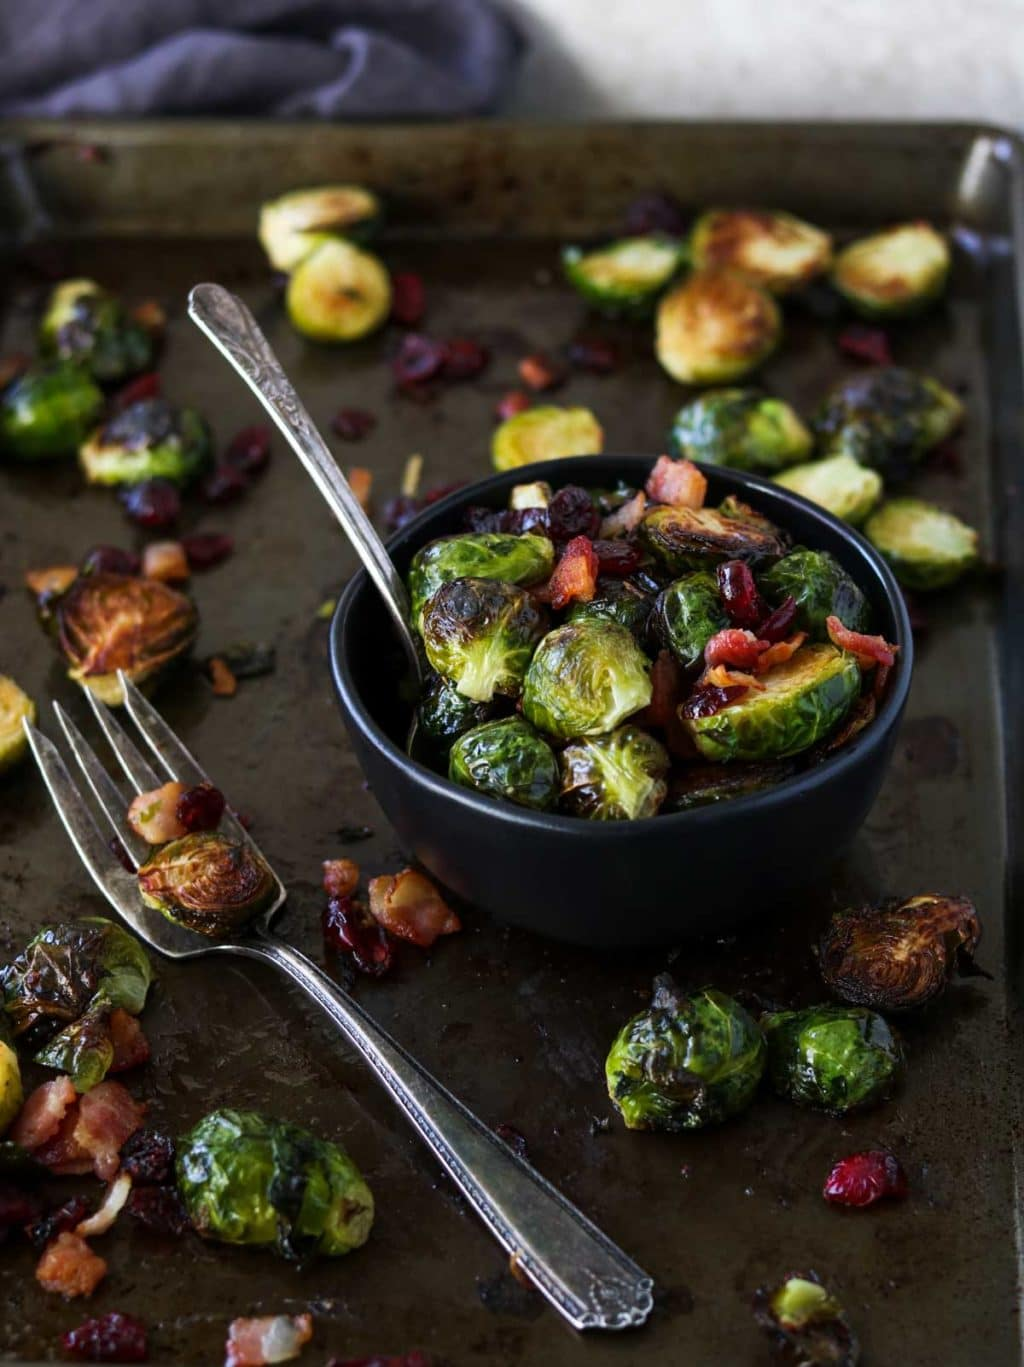 roasted brussels sprouts in a black bowl with a fork, sitting on a sheet pan scattered with brussels sprouts and bacon